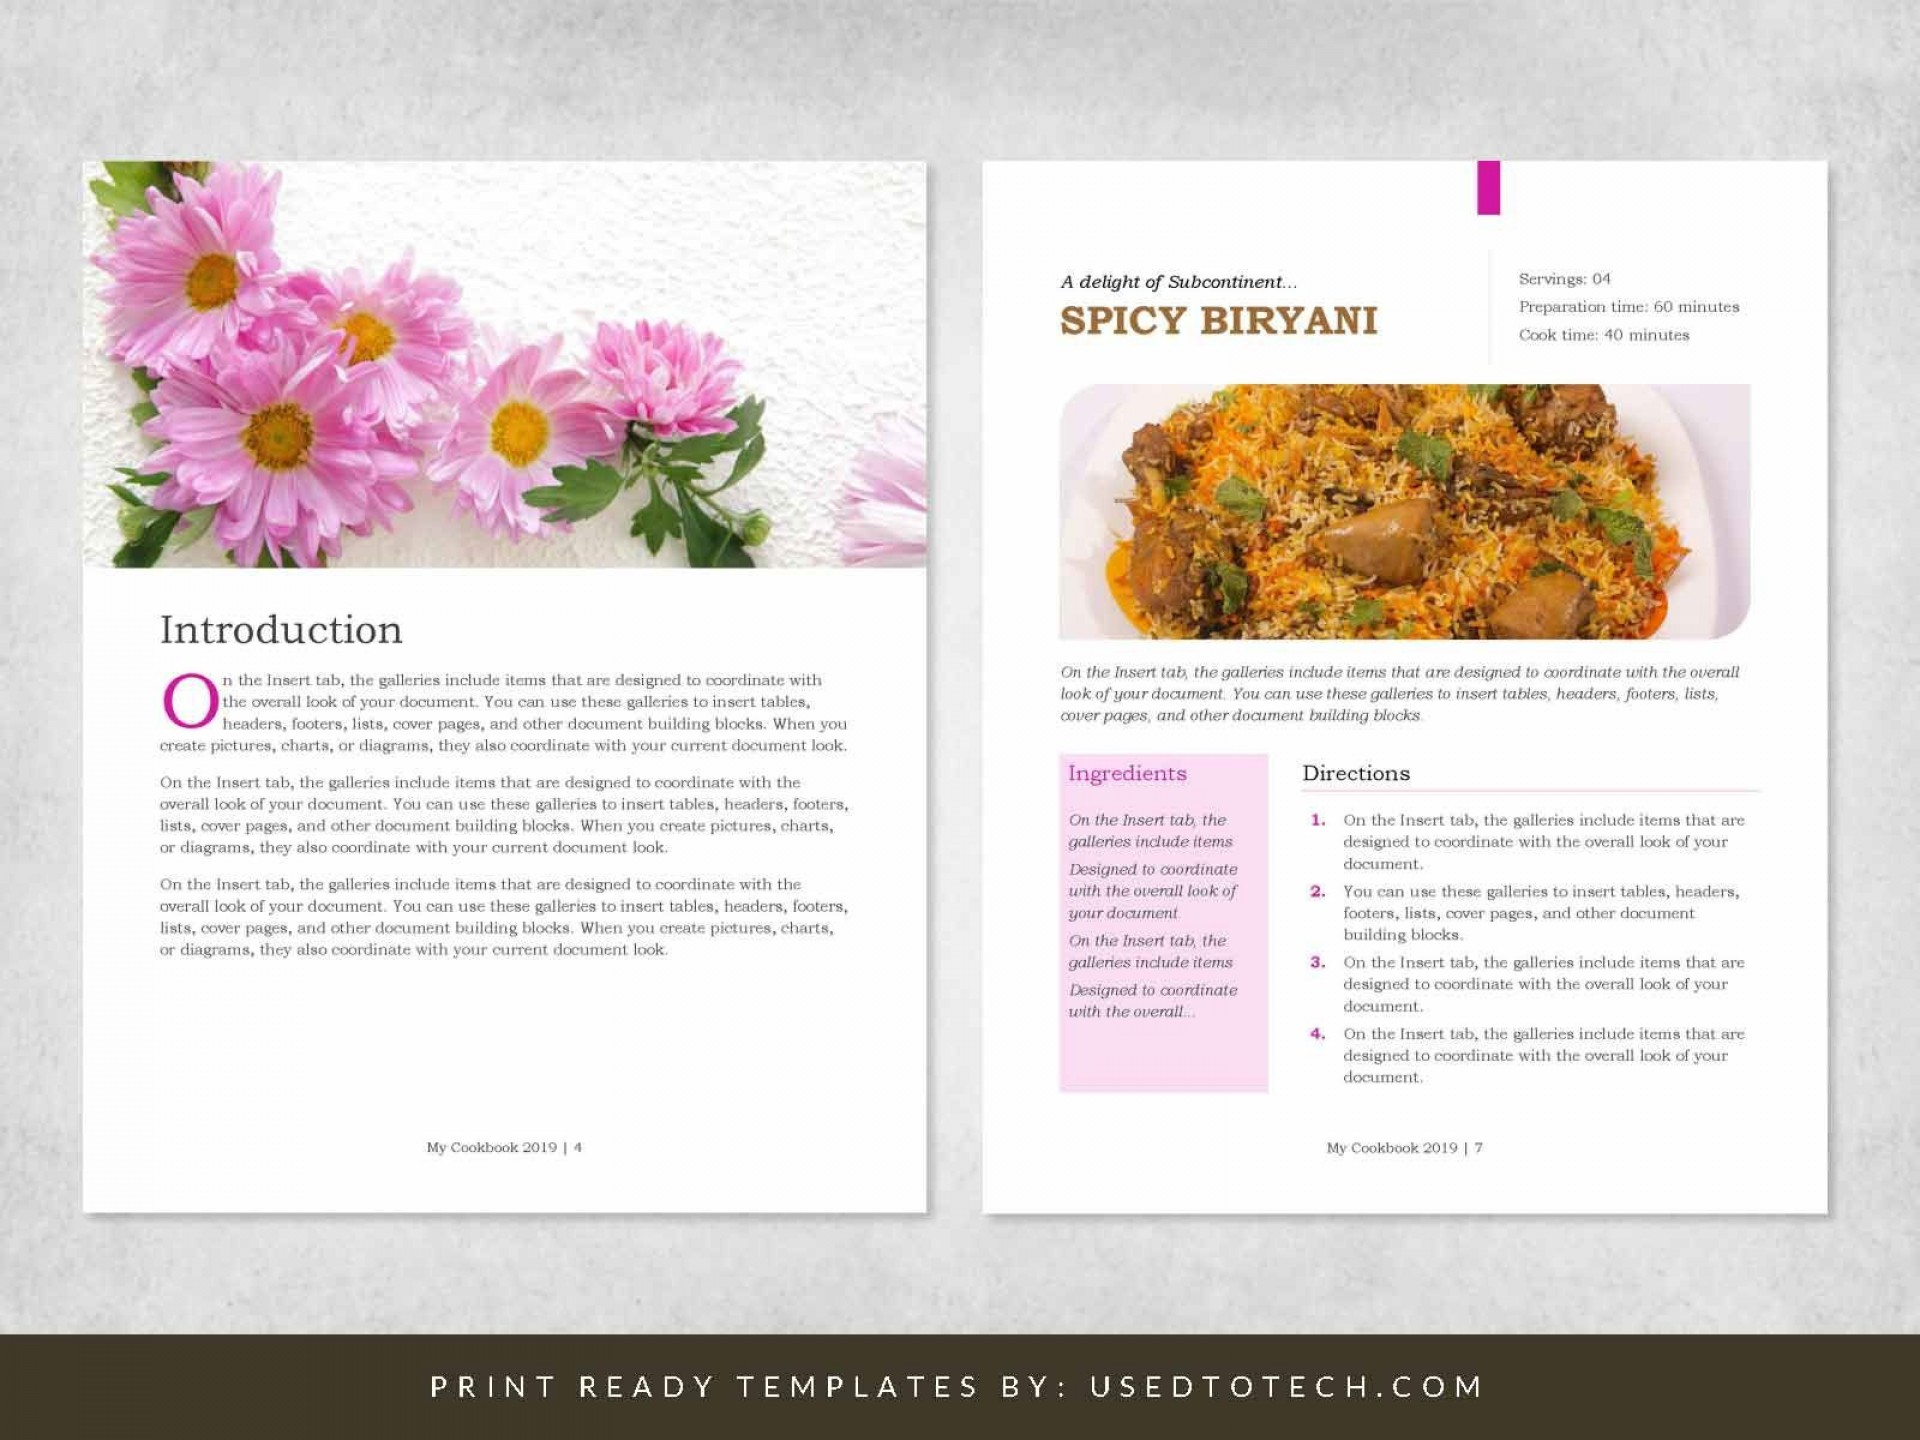 000 Stirring Make Your Own Cookbook Template Free Example  Download1920